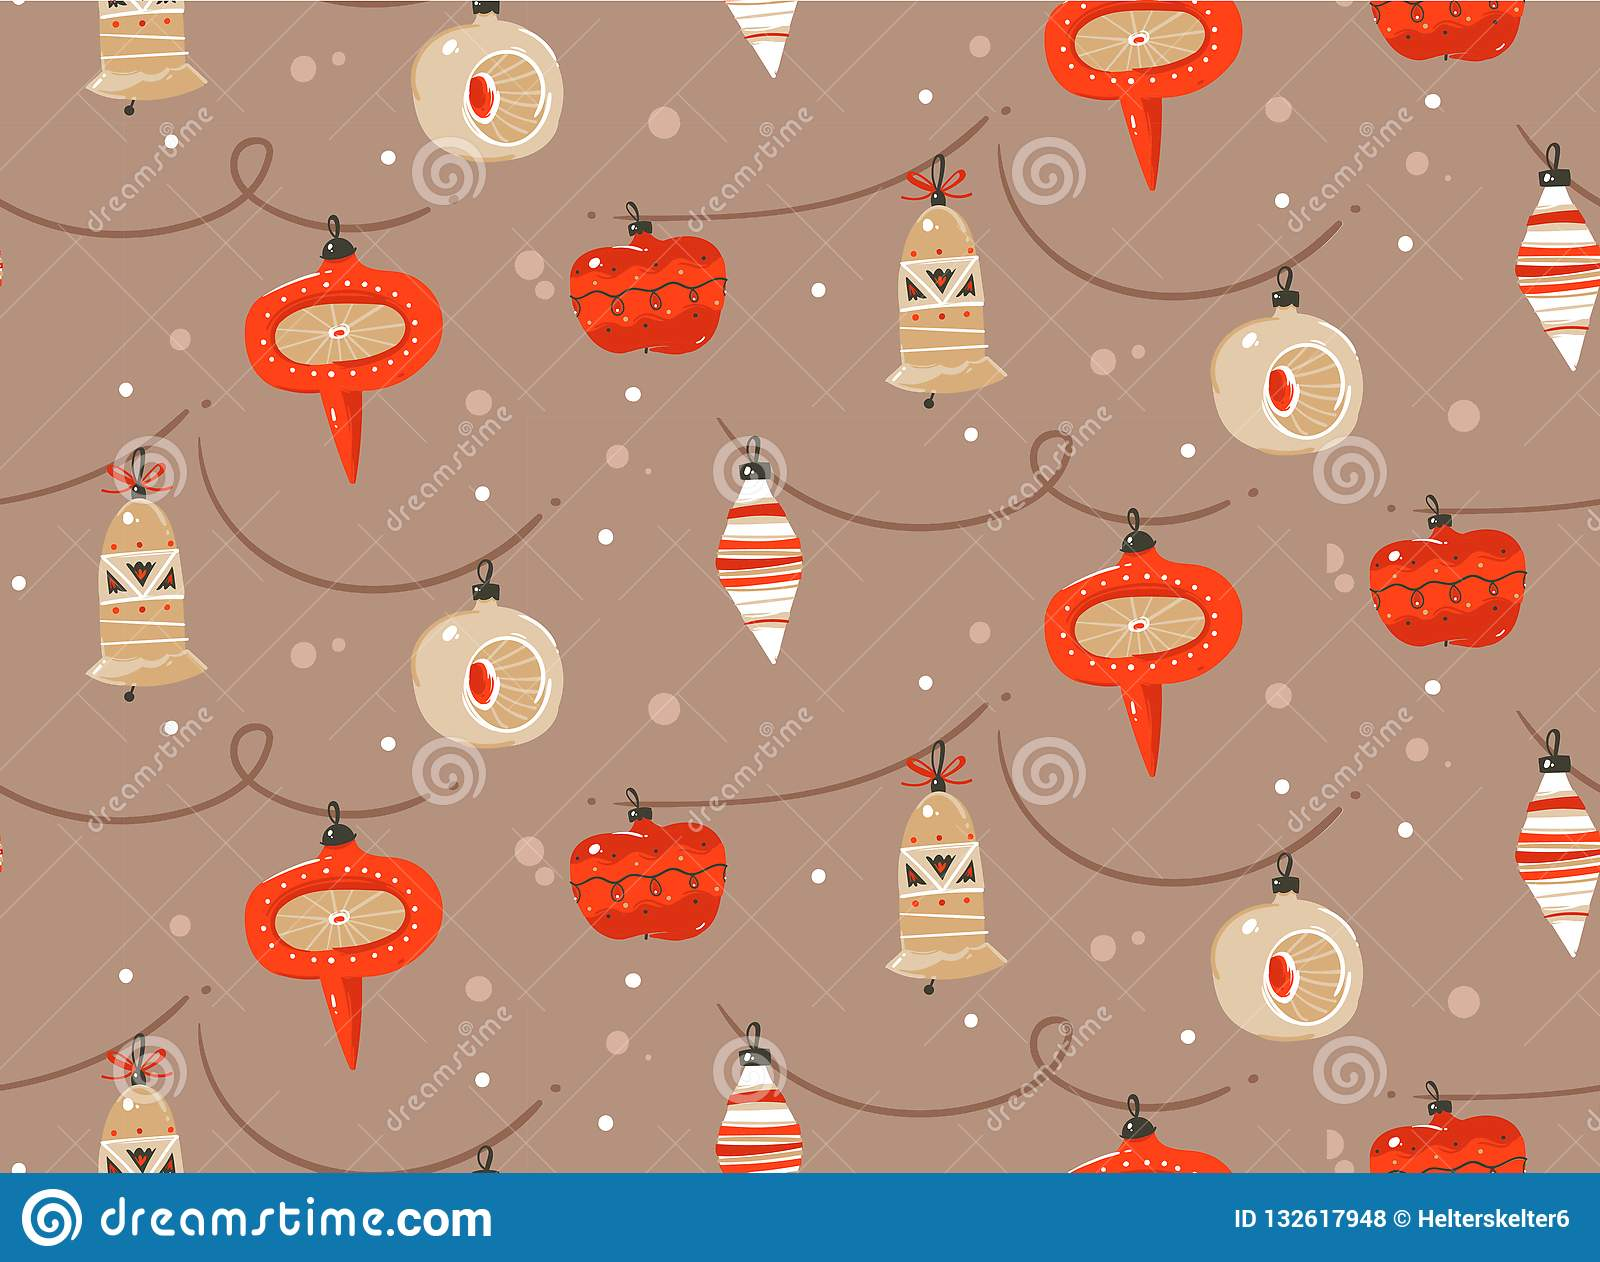 Hand drawn vector abstract fun Merry Christmas and Happy New Year time cartoon rustic festive seamless pattern with cute